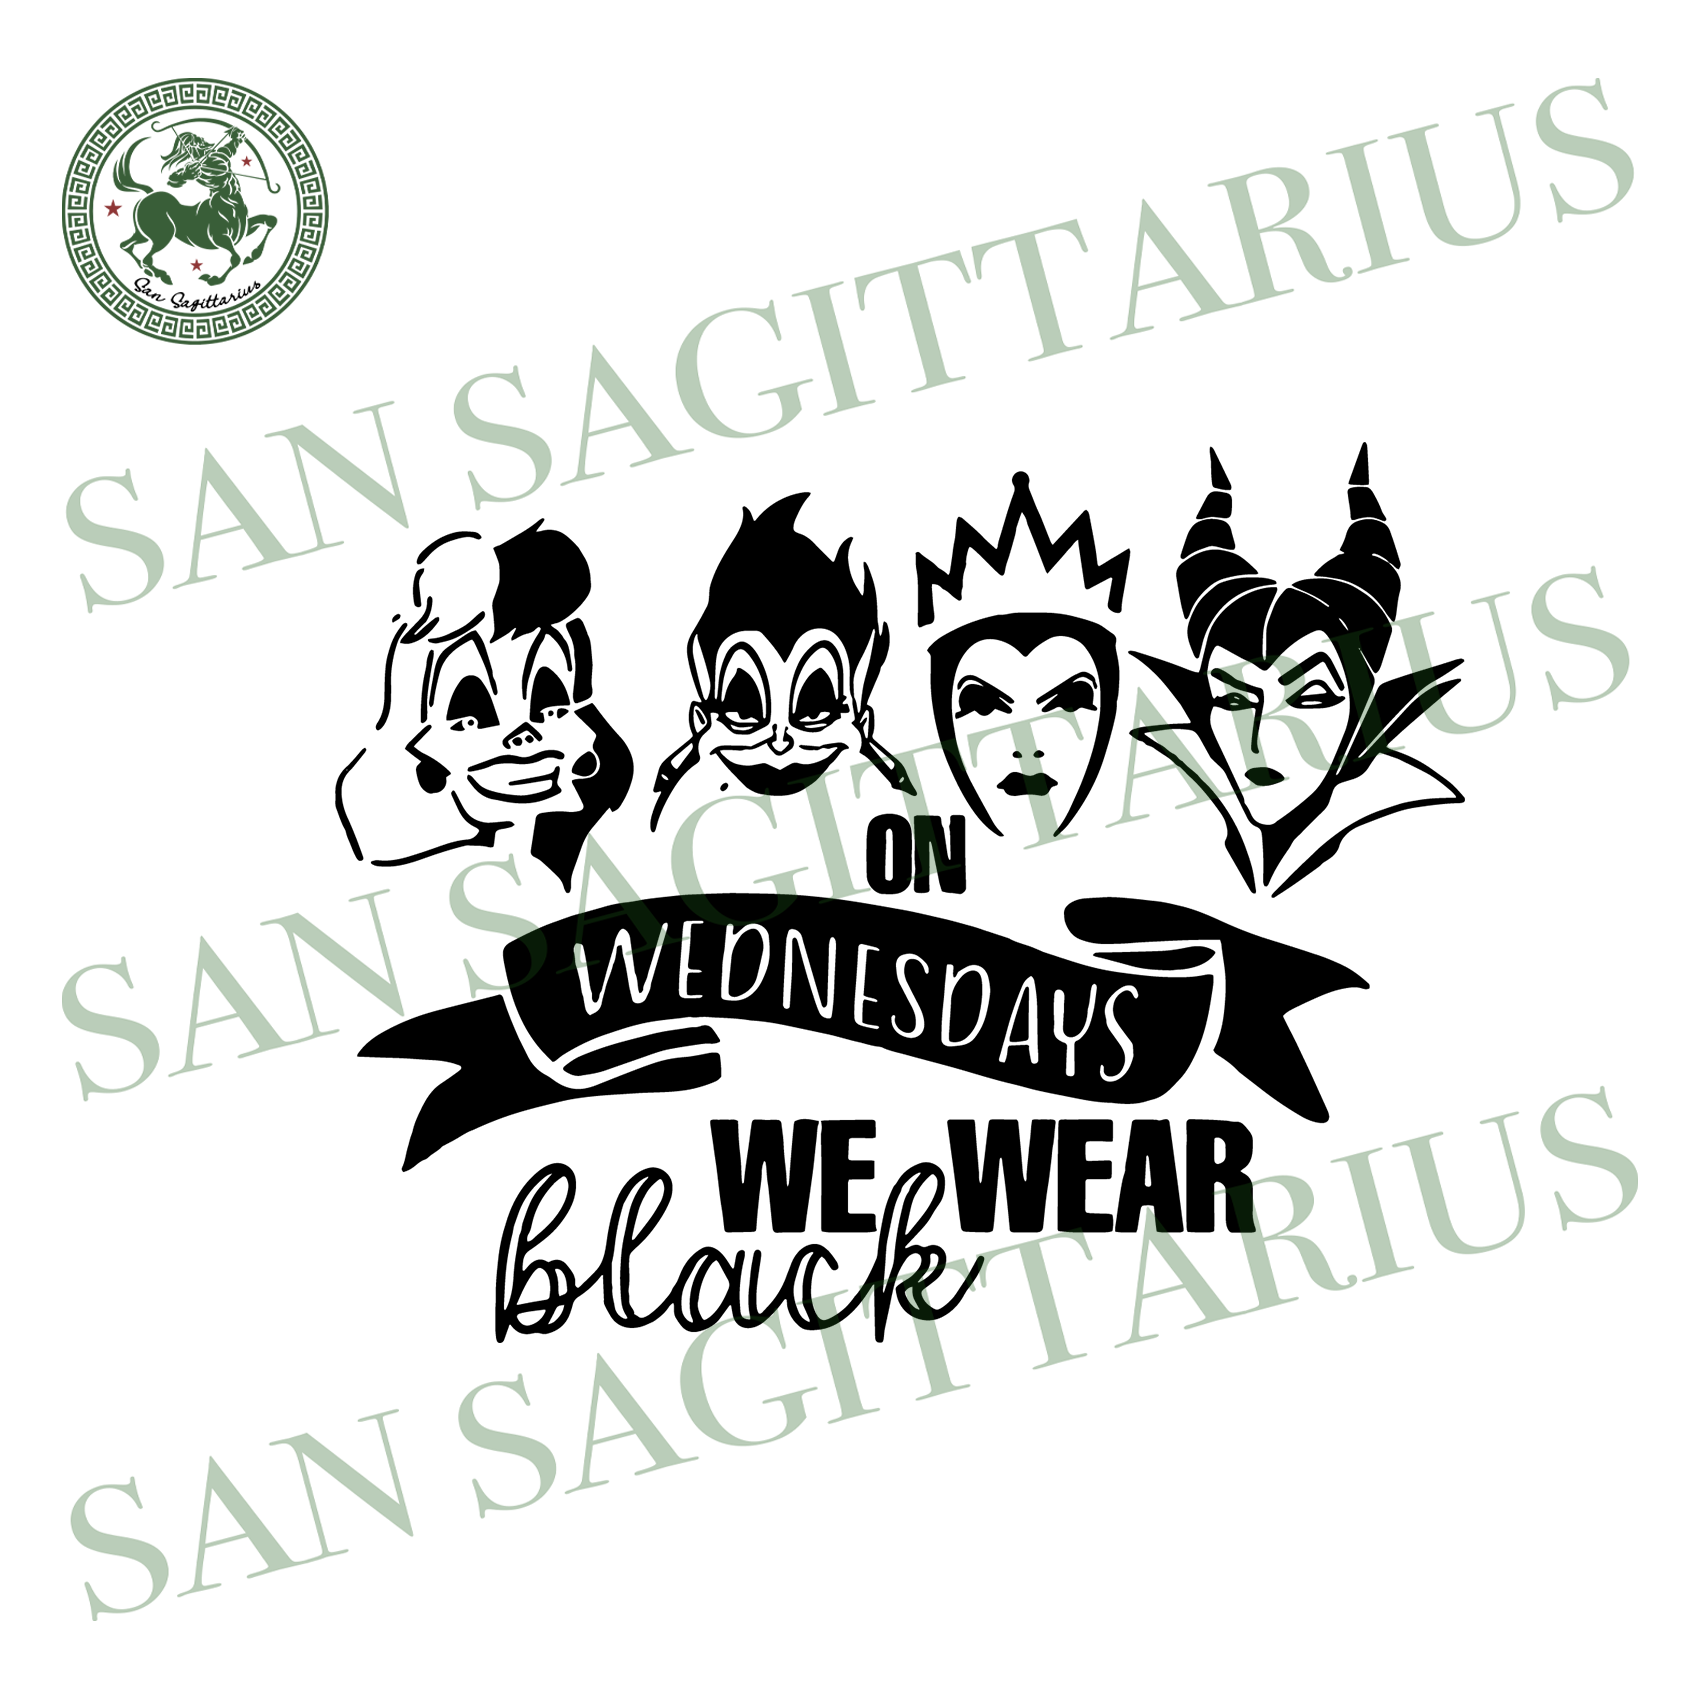 On Wednesdays we Wear Black Svg,Addams Family Shirt ,Wednesday Adams Shirt,Wednesdays we Wear Black Svg, villains svg,Addams Family Svg,Halloween Shirt,Halloween Gift